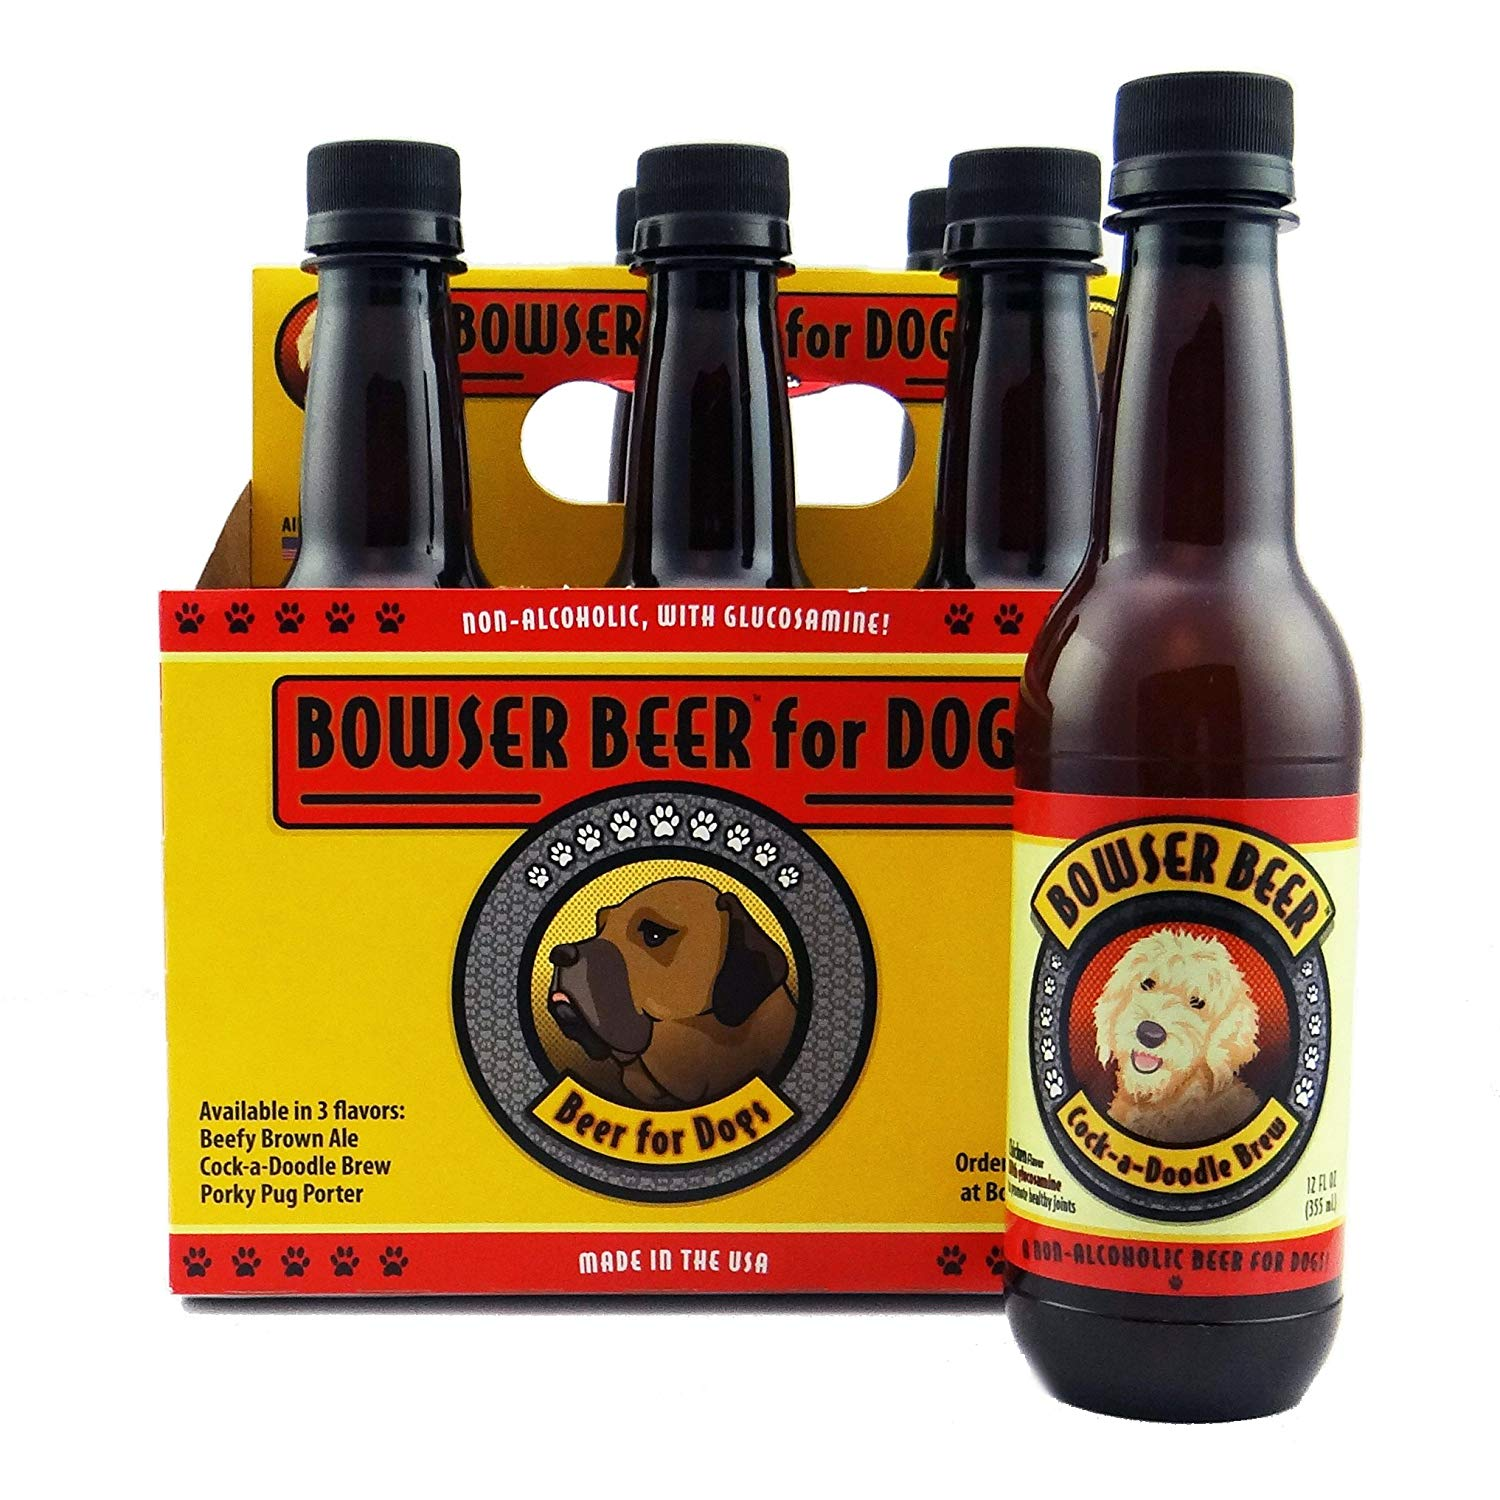 Bowser Beer Cock-a-Doodle Brew for Dogs, 6-pk